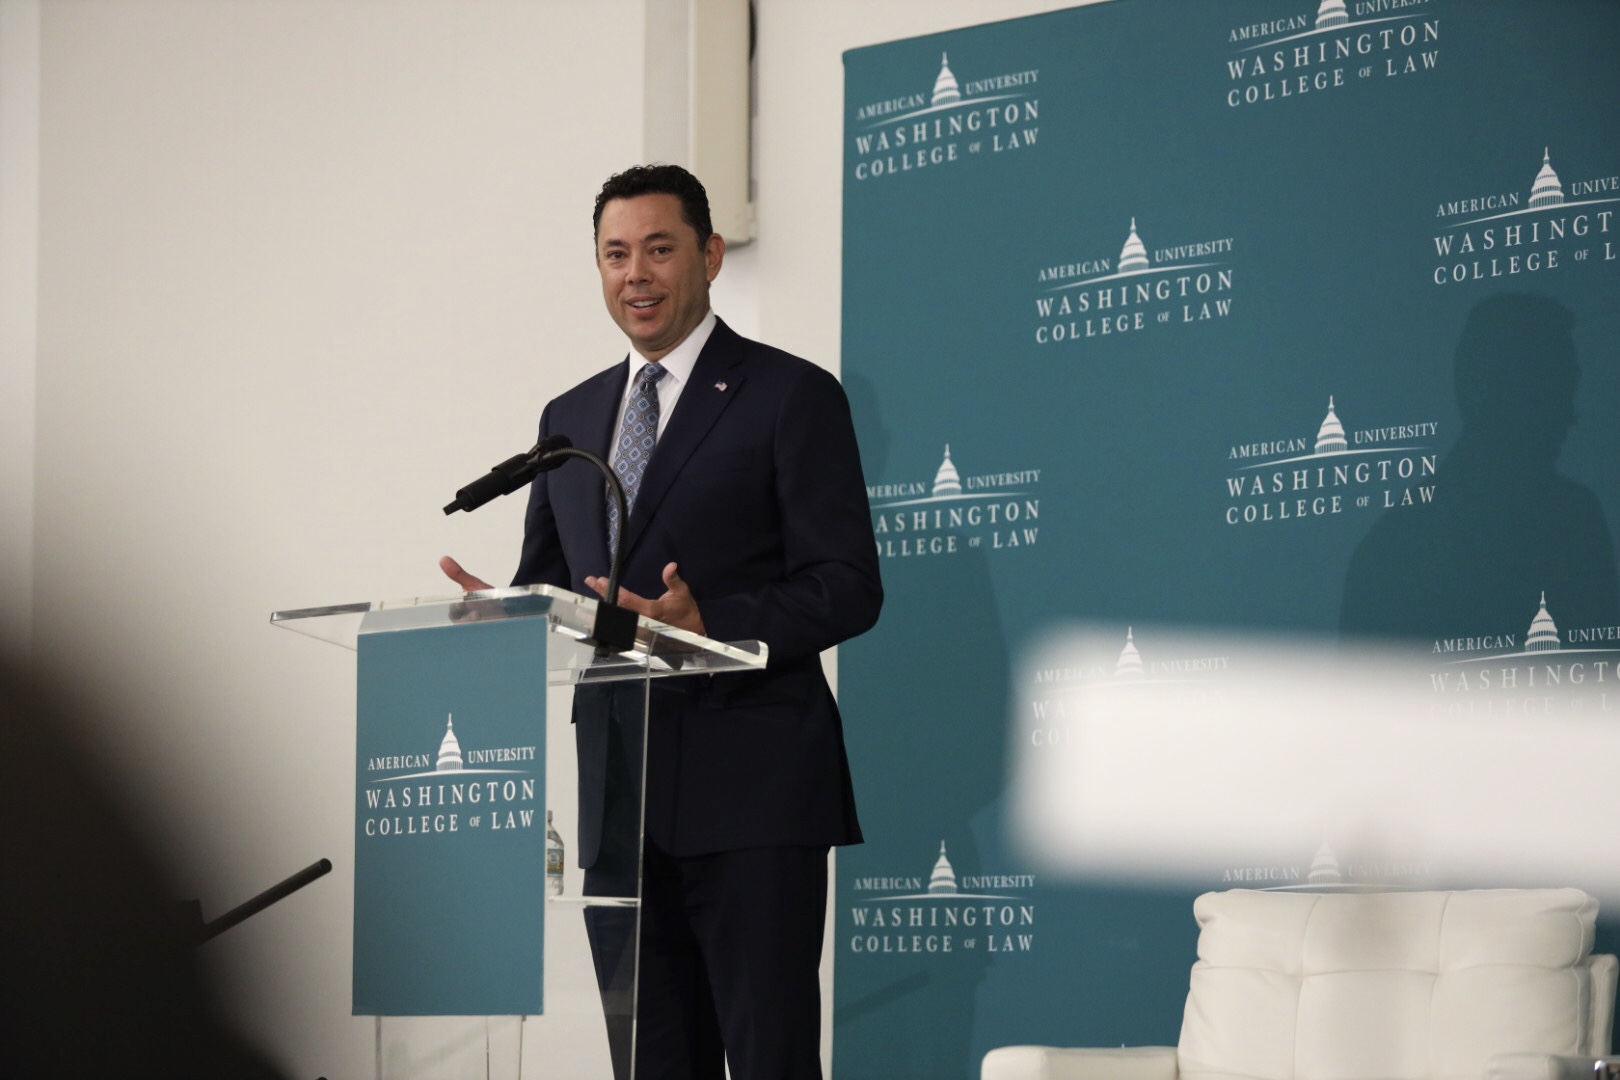 Jason Chaffetz, former U.S. Representative (R-UT) and House Oversight and Government Reform Committee chair.